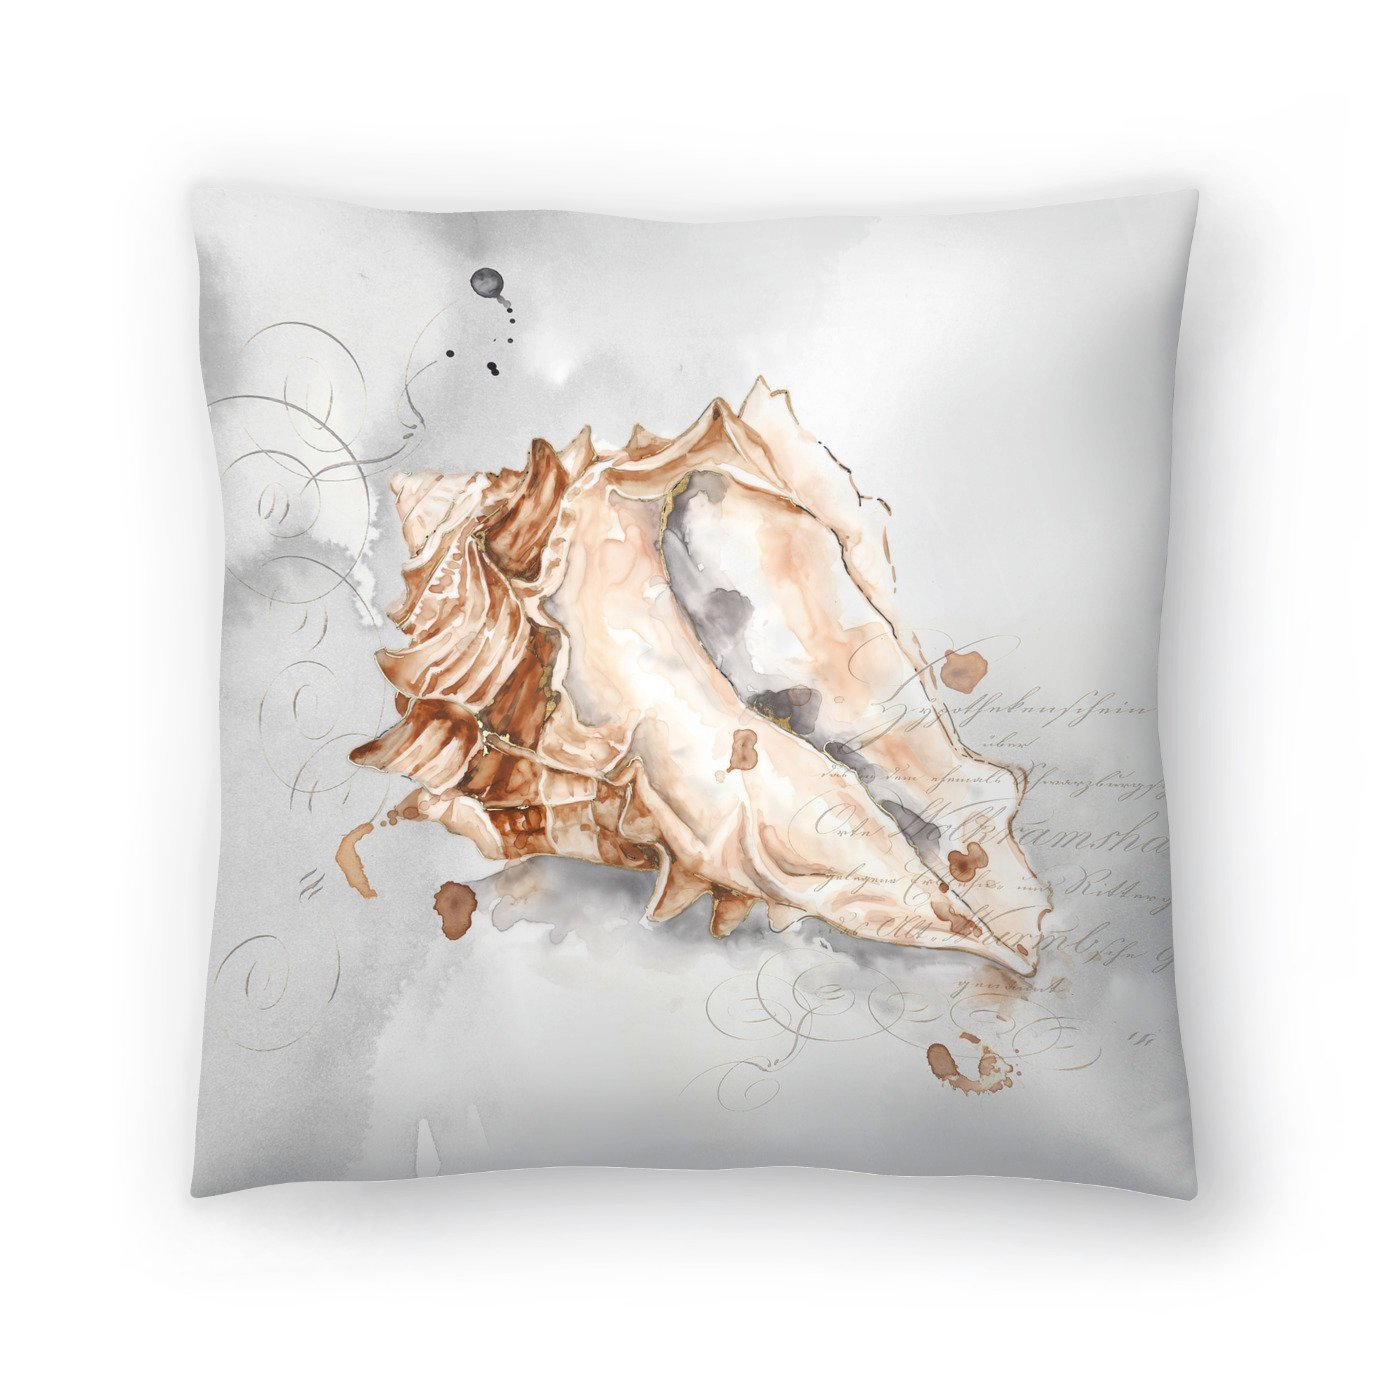 Blush Shell Iii by PI Creative Art Decorative Pillow - Decorative Pillow - Americanflat